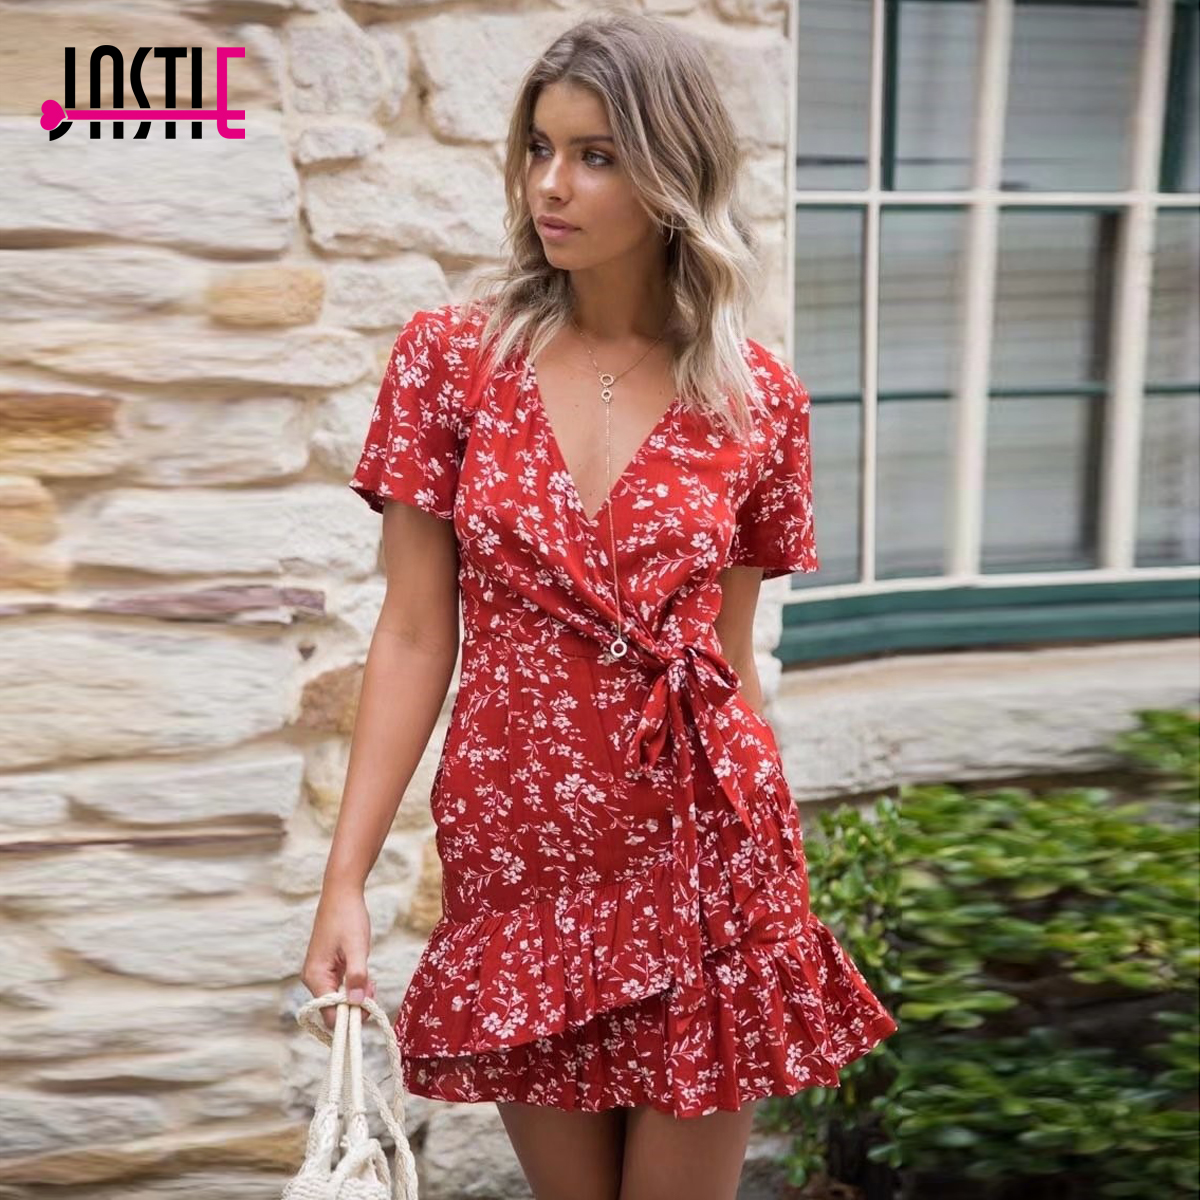 76b3f5b3c299 Jastie V-Neck Short Sleeve Wrap Dress Floral Print Red Mini Dresses Ruffle  Hem Casual Beach Dress Summer female vestidos 2018